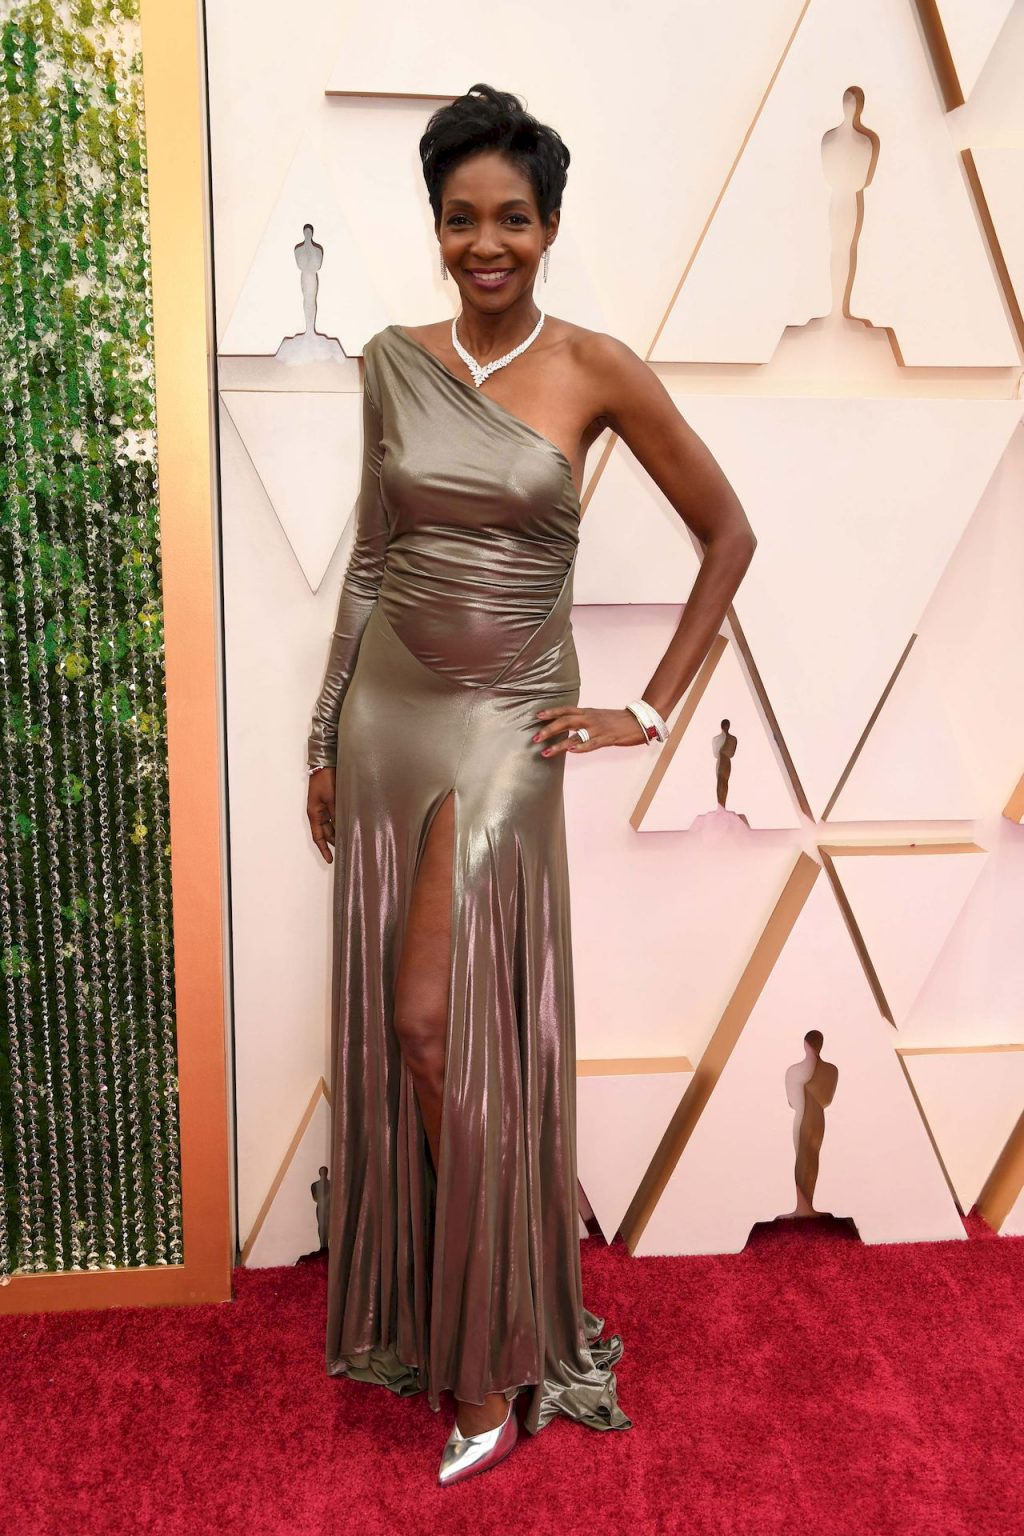 Roshumba Williams Shows Her Pokies at the 92nd Annual Academy Awards (7 Photos)